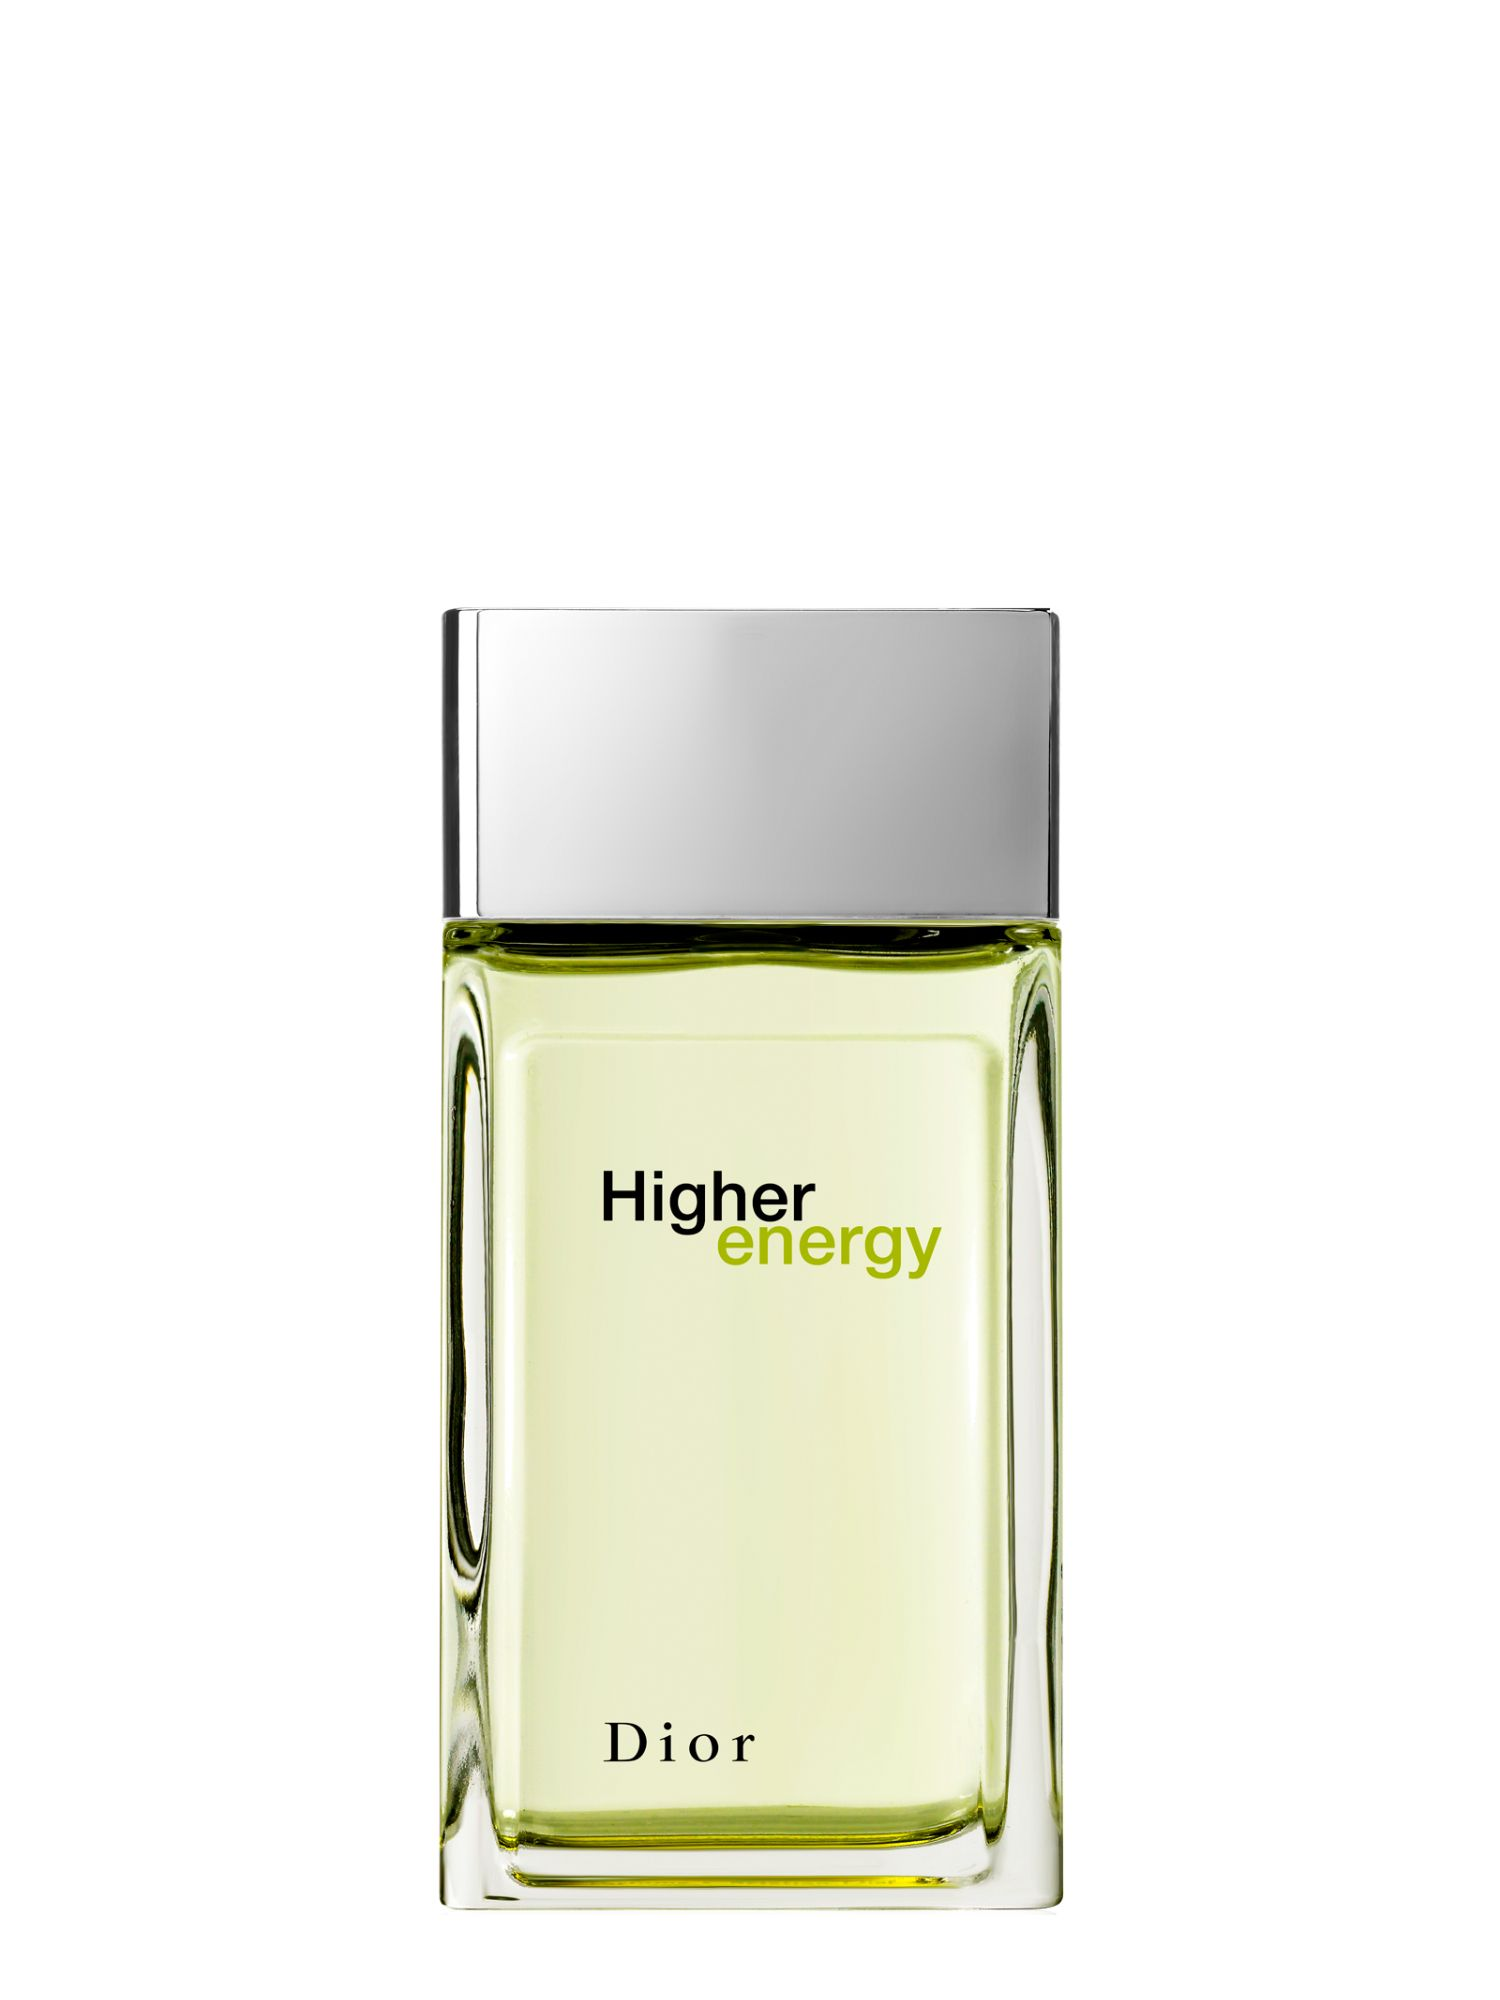 Higher Energy Eau de Toilette 50ml